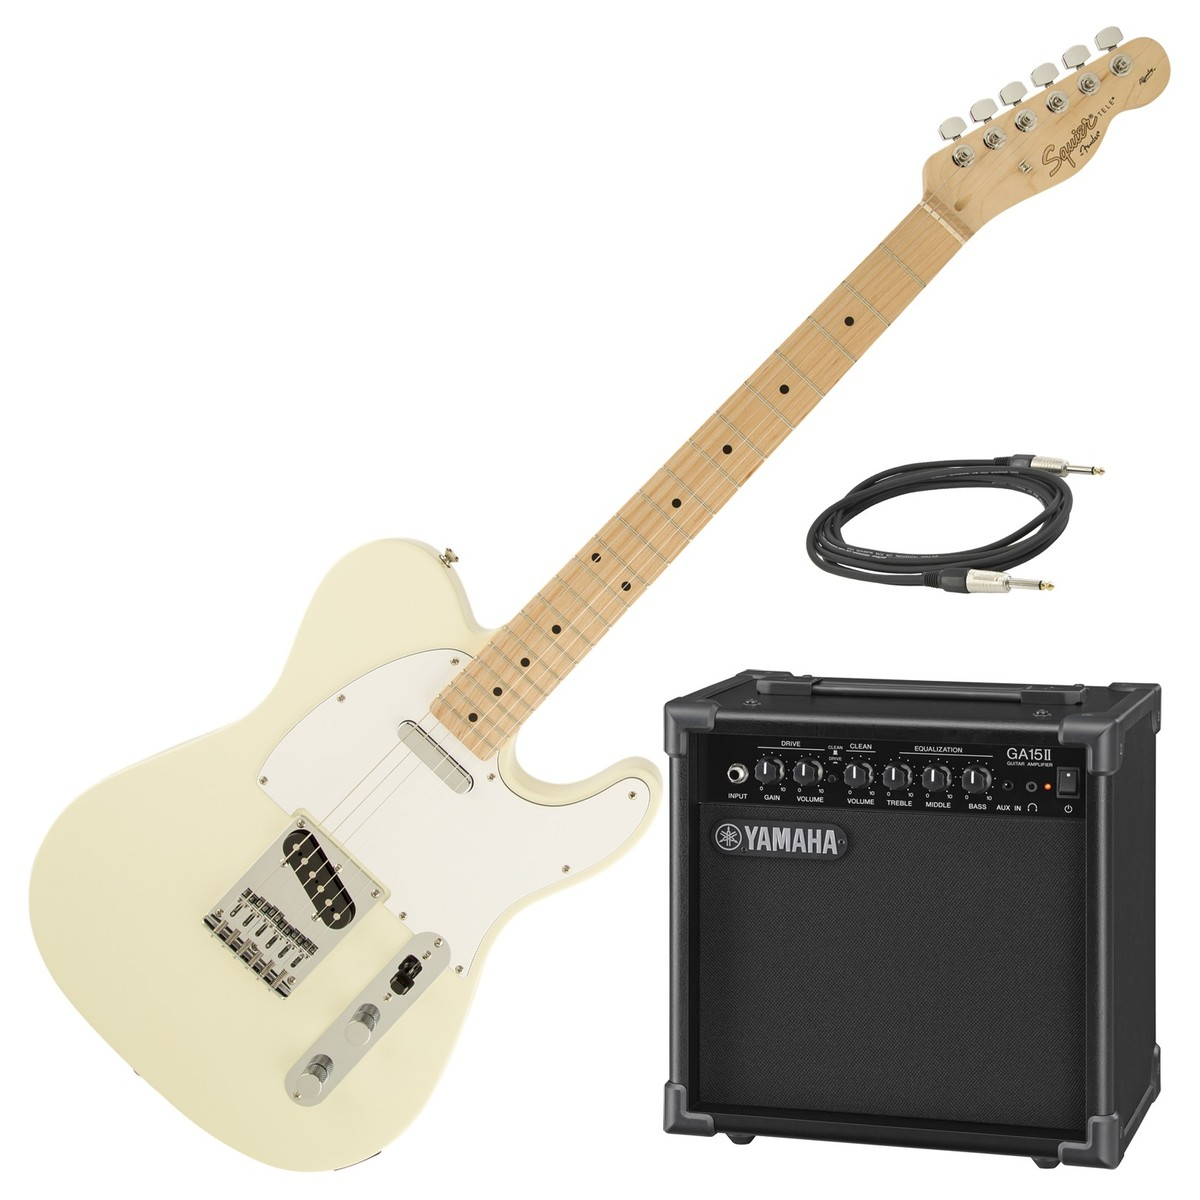 Squier Affinity Strat Wiring Diagram: DISC Squier Affinity Telecaster MN, Arctic White & Yamaha